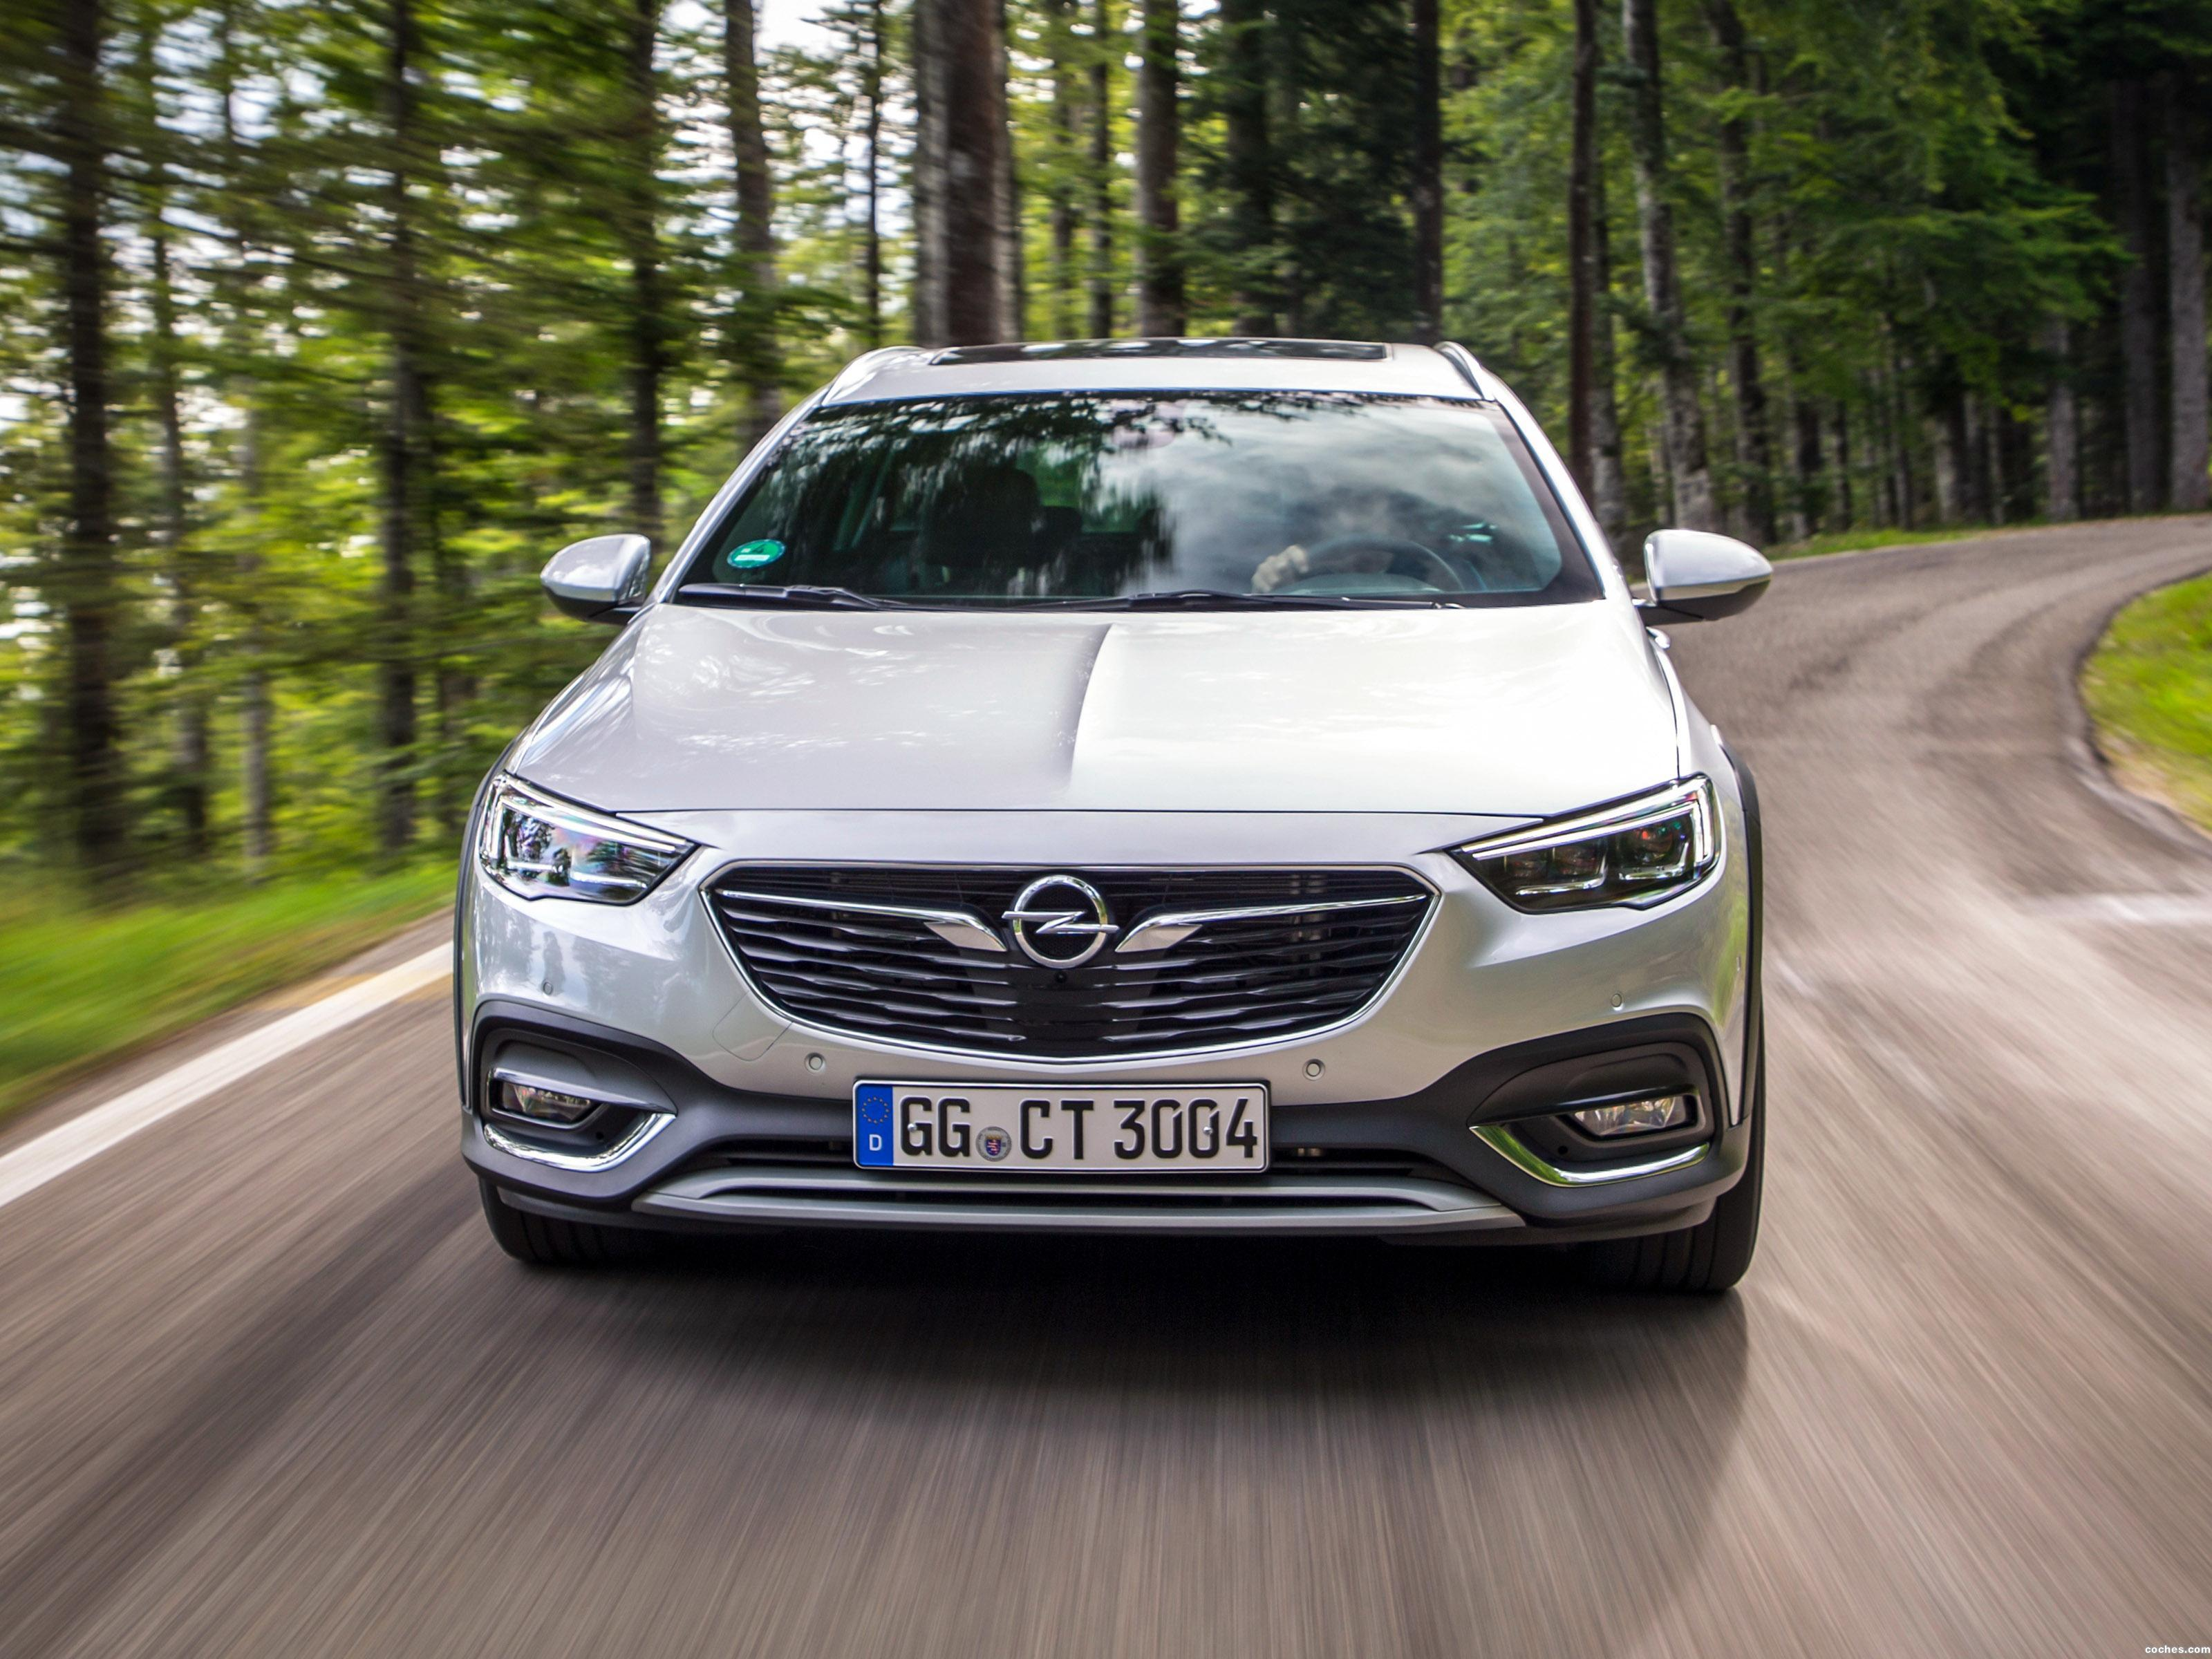 Foto 10 de Opel Insignia Country Tourer Turbo 4x4 2017